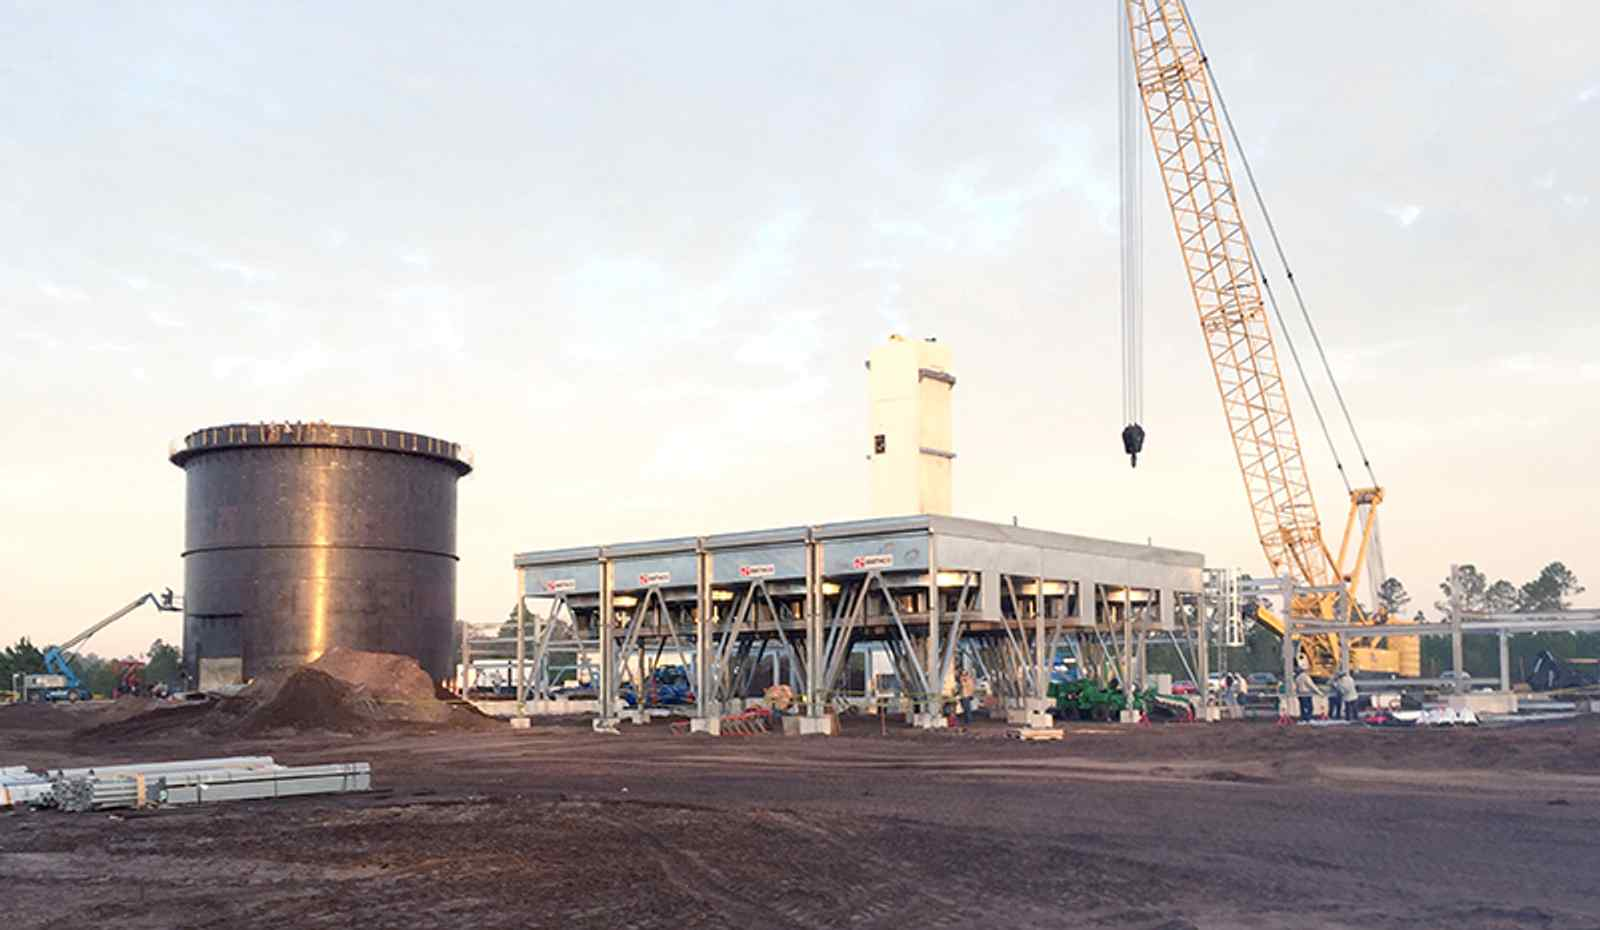 Go behind the scenes at the construction of Eagle LNG's new facility — and check out how LNG works